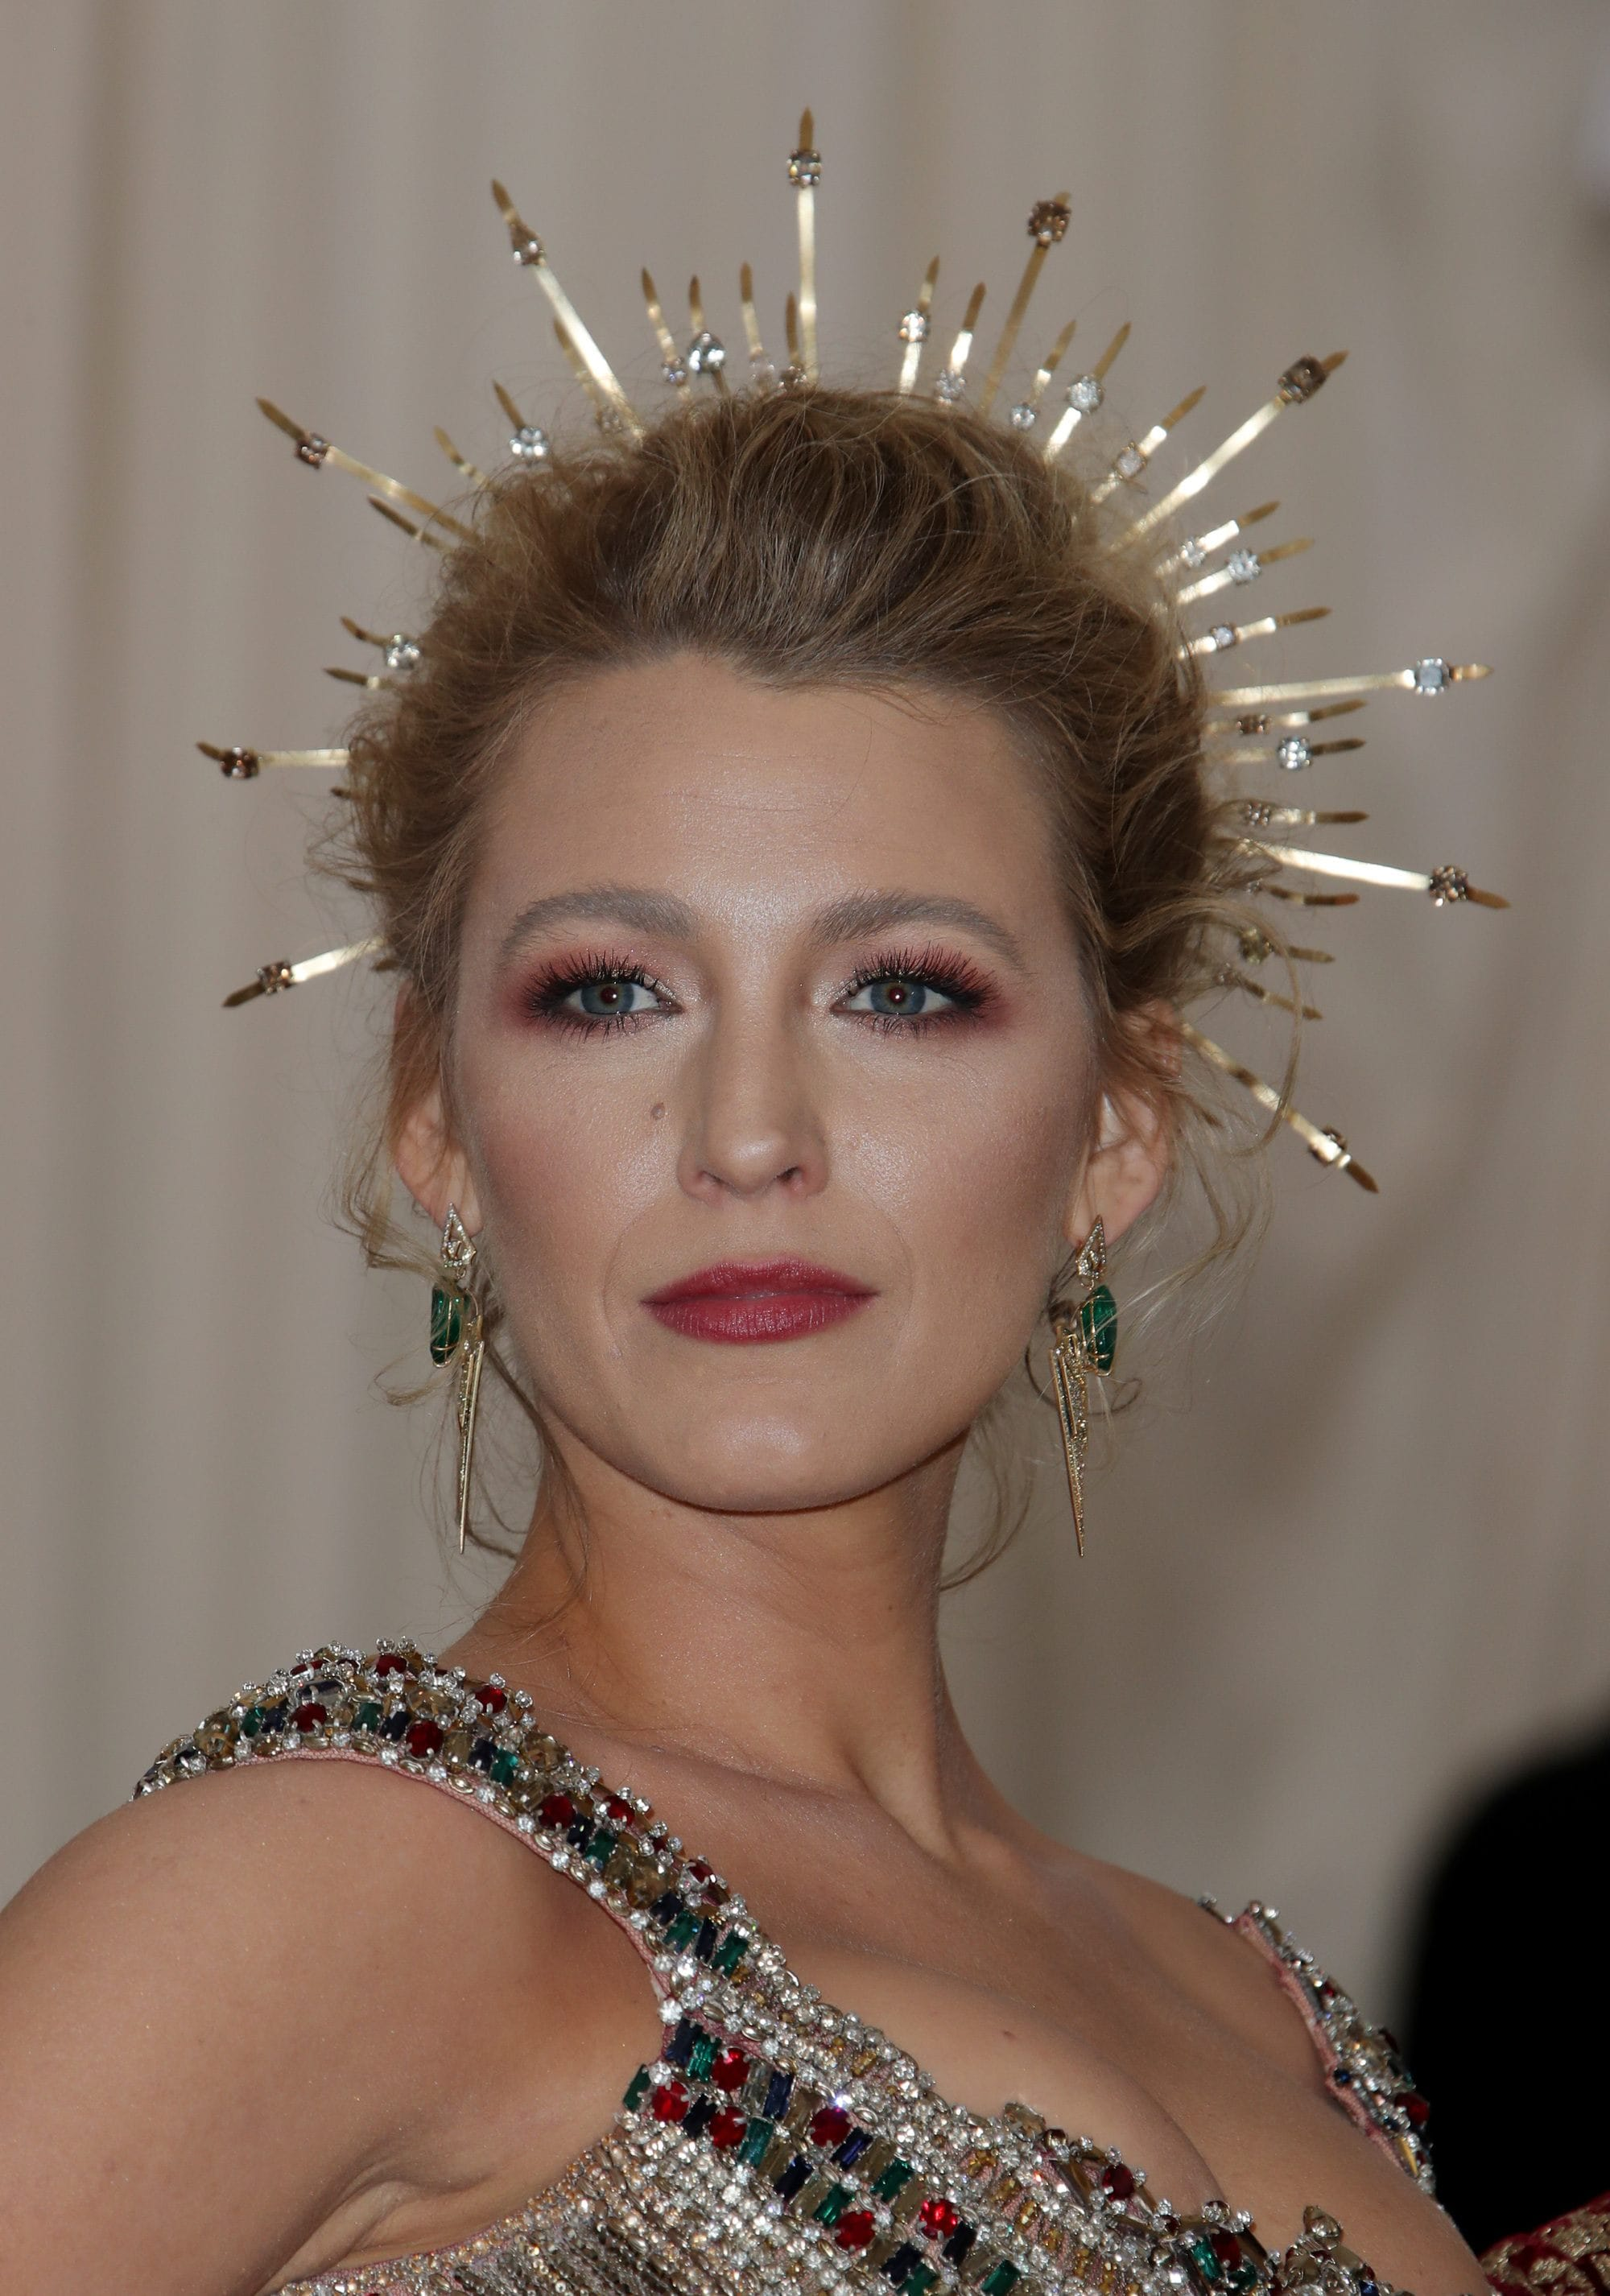 close up shot of blake lively with messy bun updo with halo crown accessory, wearing bejewelled dress and posing on the 2018 met gala red carpet